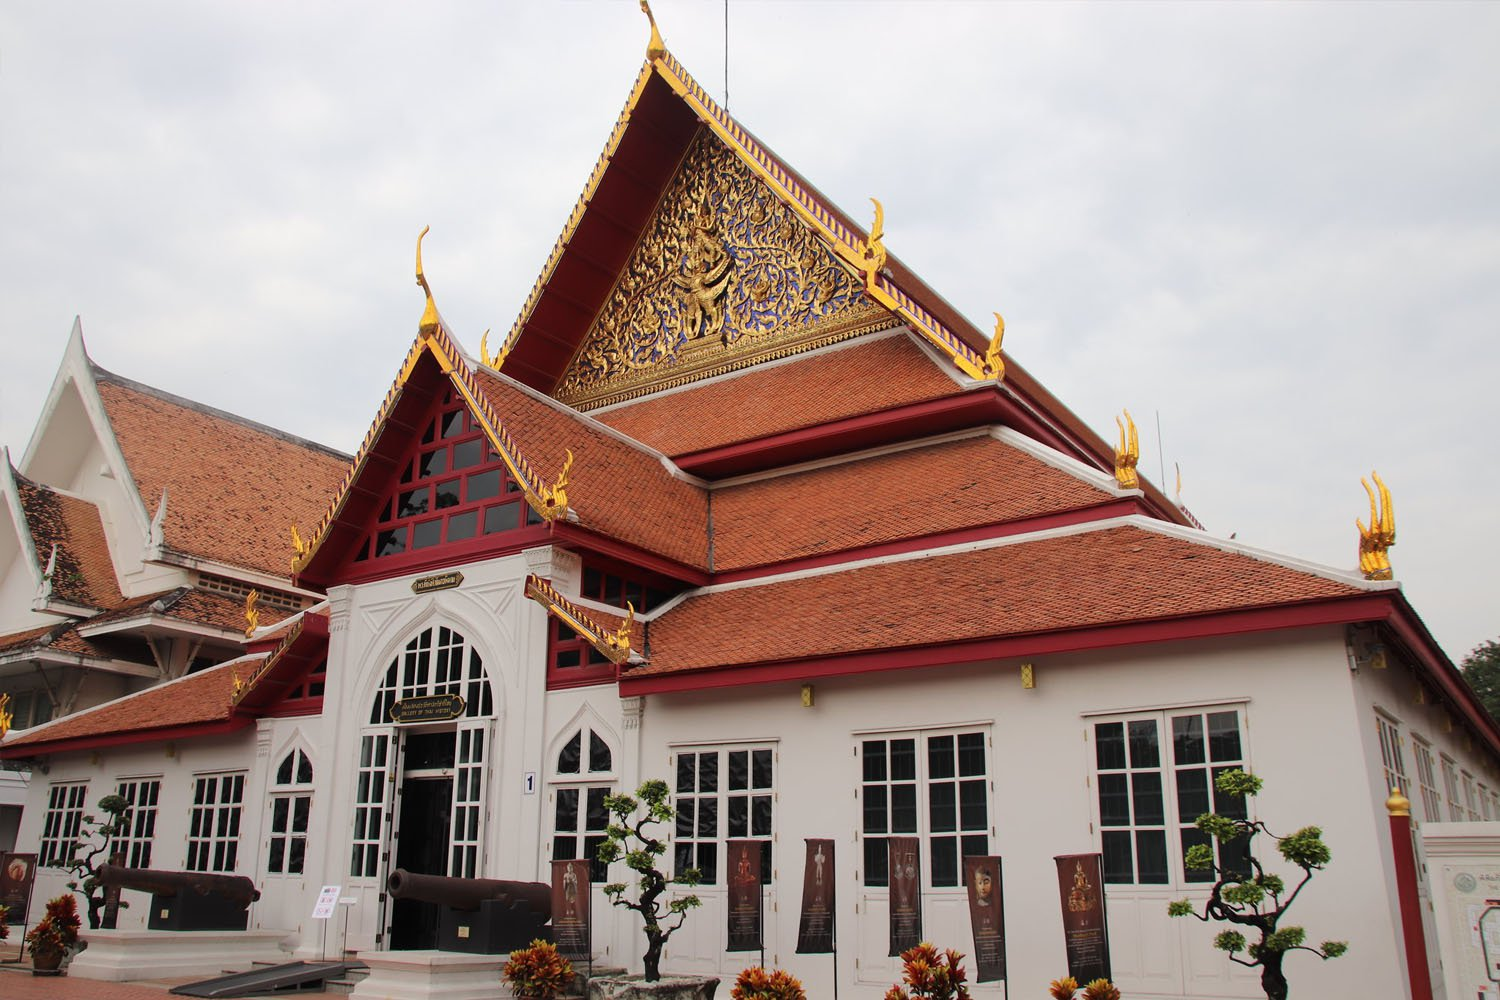 The National Gallery and National Museum Bangkok